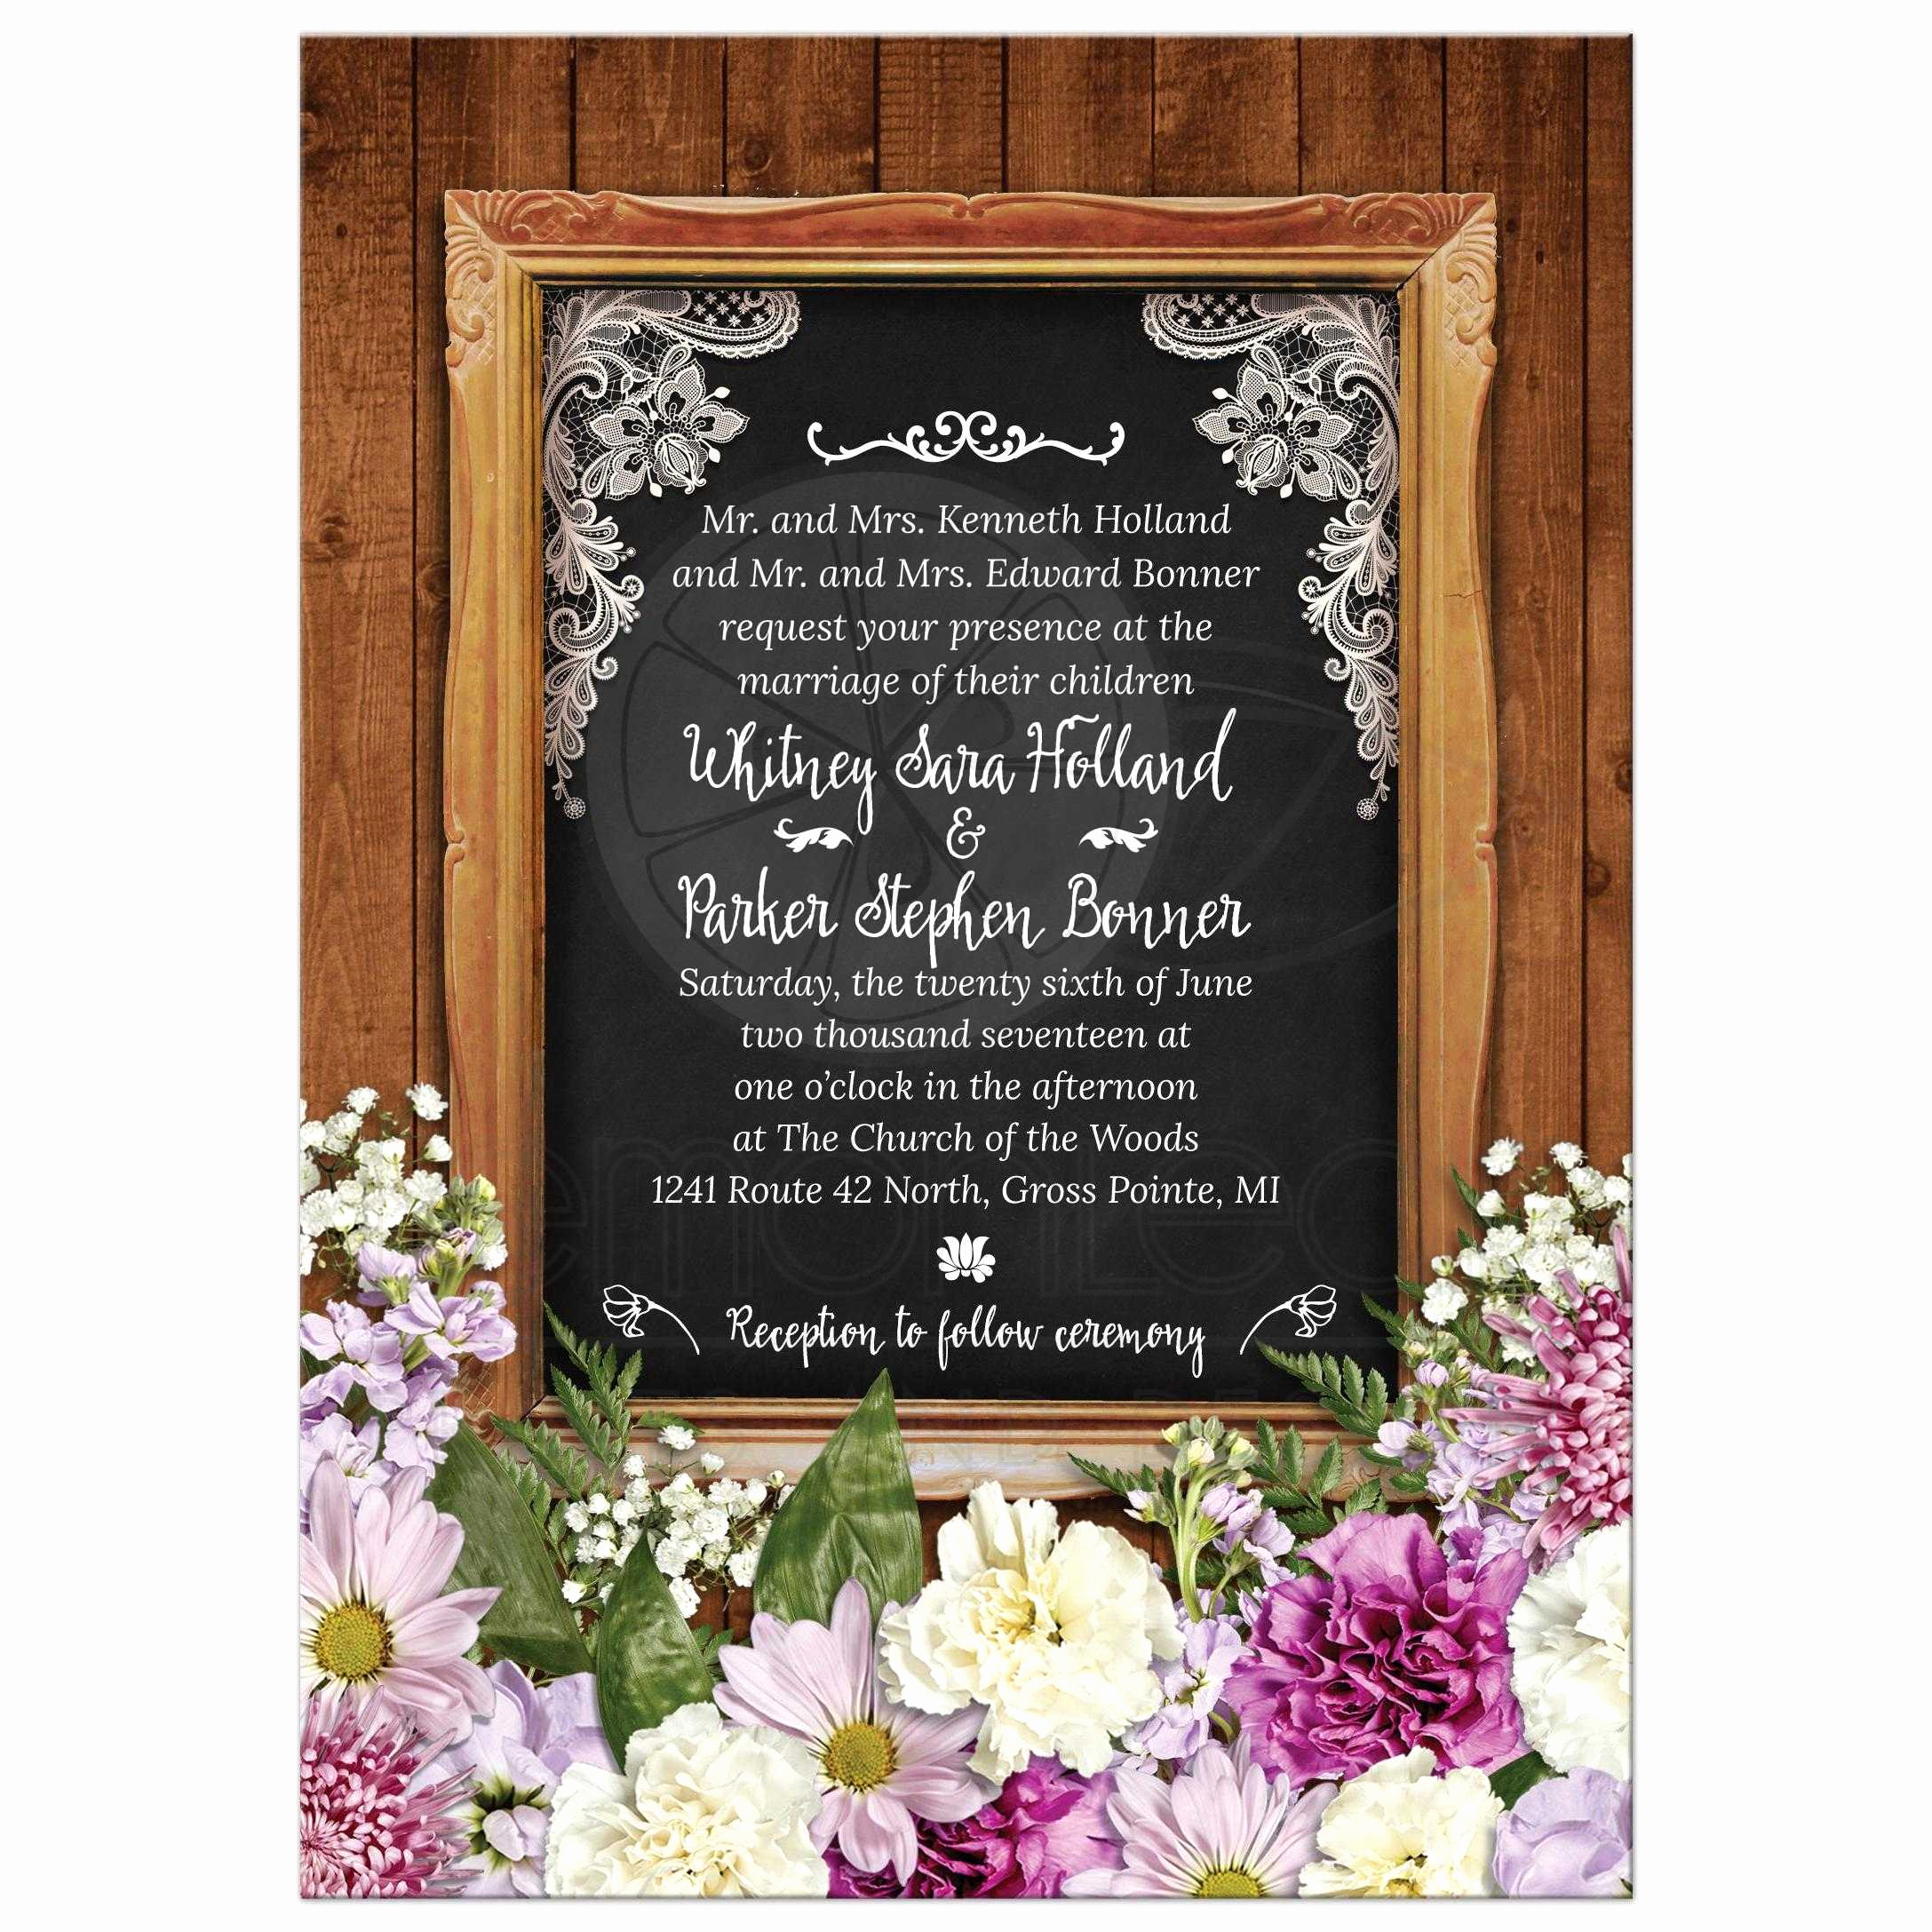 Wedding Invitation Frame Ideas Fresh Rustic Spring Chalkboard Picture Frame Floral Wedding